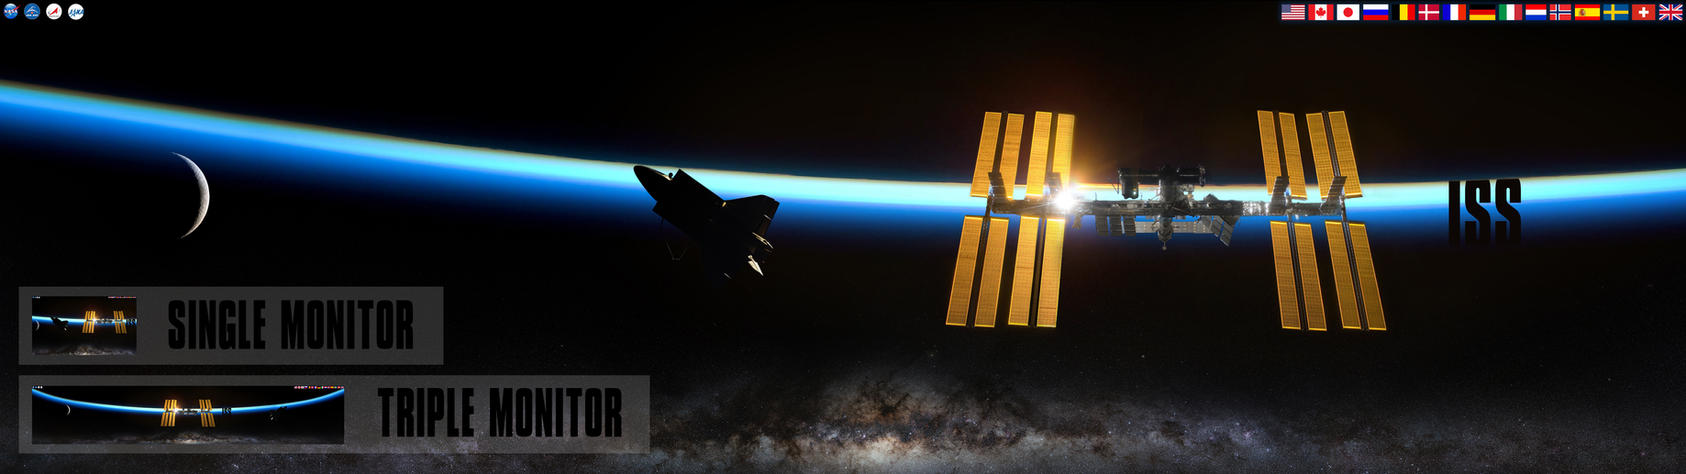 Nasa iss international space station wallpaper by - Wallpaper iss ...